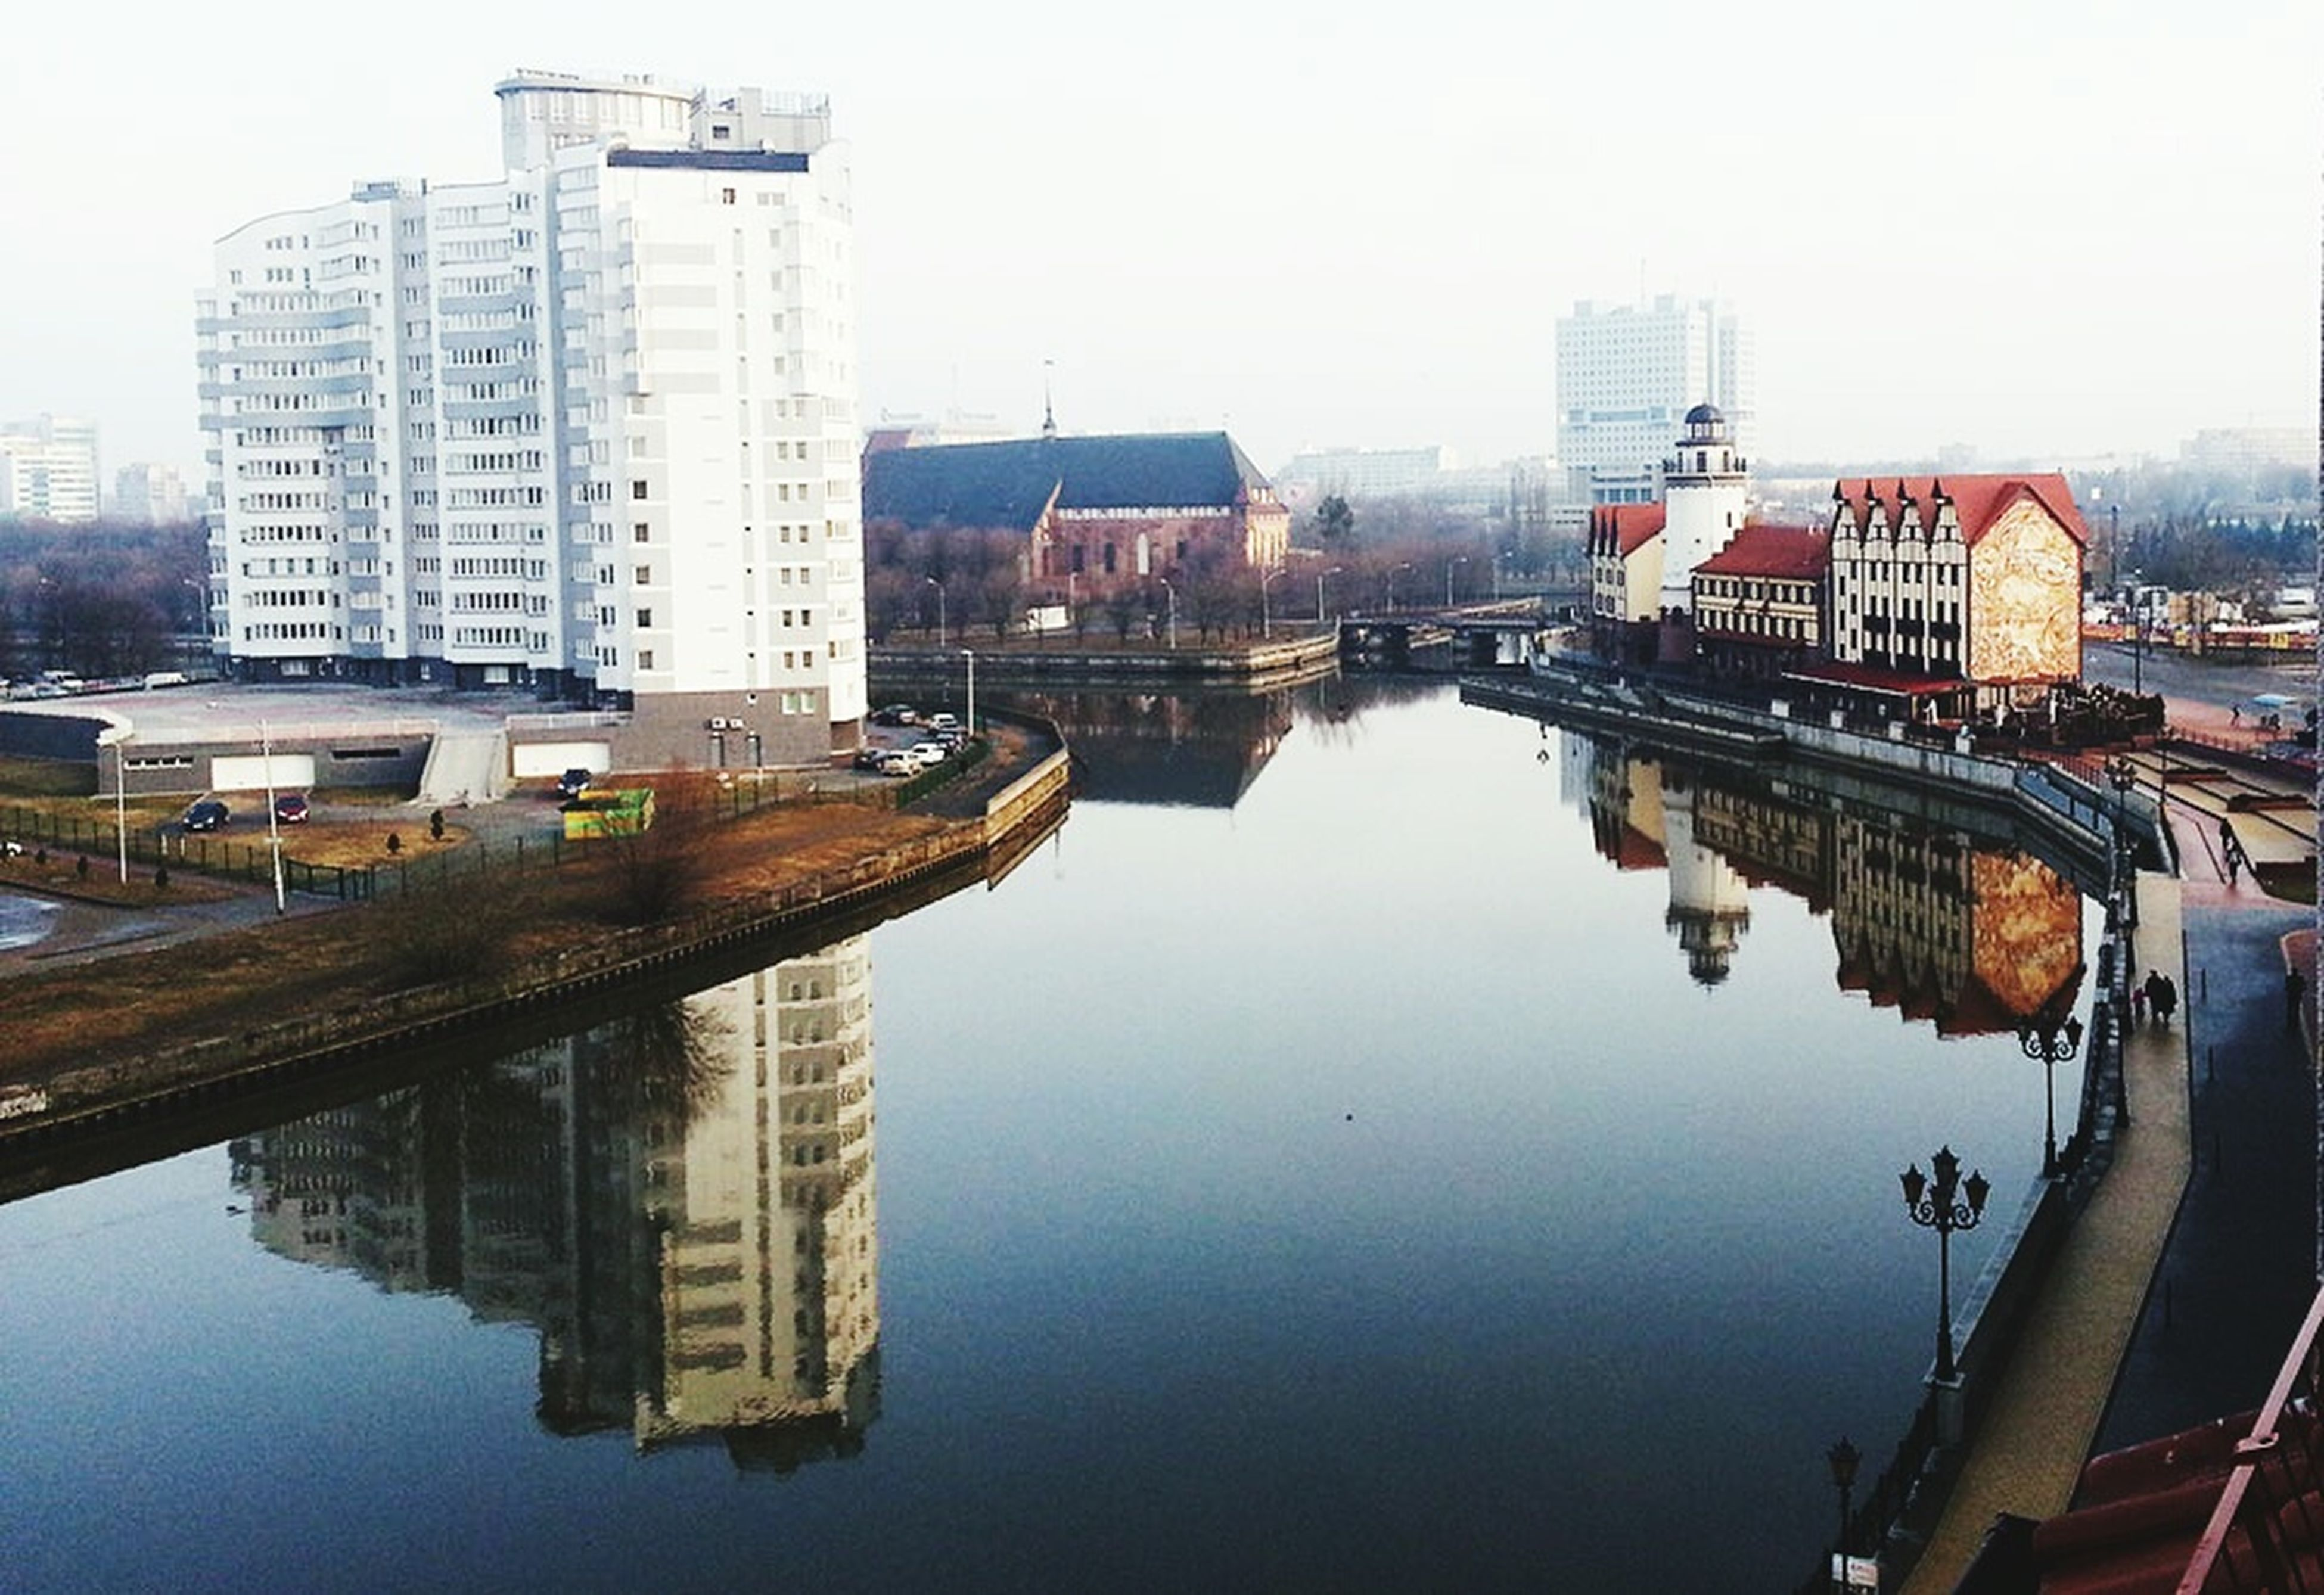 reflection, water, city, skyscraper, architecture, urban skyline, building exterior, river, modern, cityscape, built structure, waterfront, outdoors, bridge - man made structure, no people, sky, nautical vessel, downtown district, day